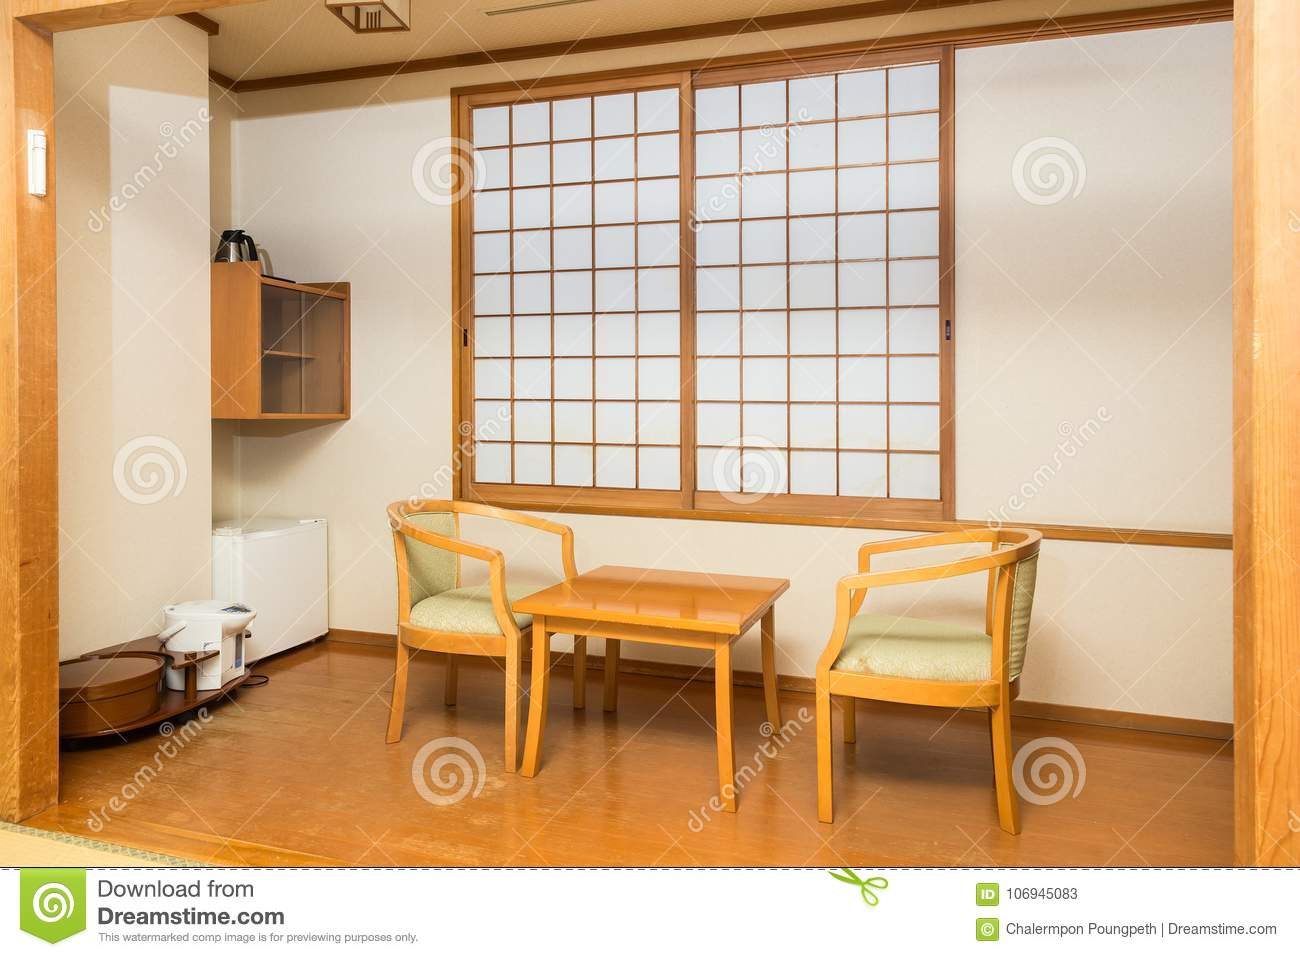 Superb Japanese Style Room With Traditional Sliding Windows Stock Download Free Architecture Designs Xaembritishbridgeorg